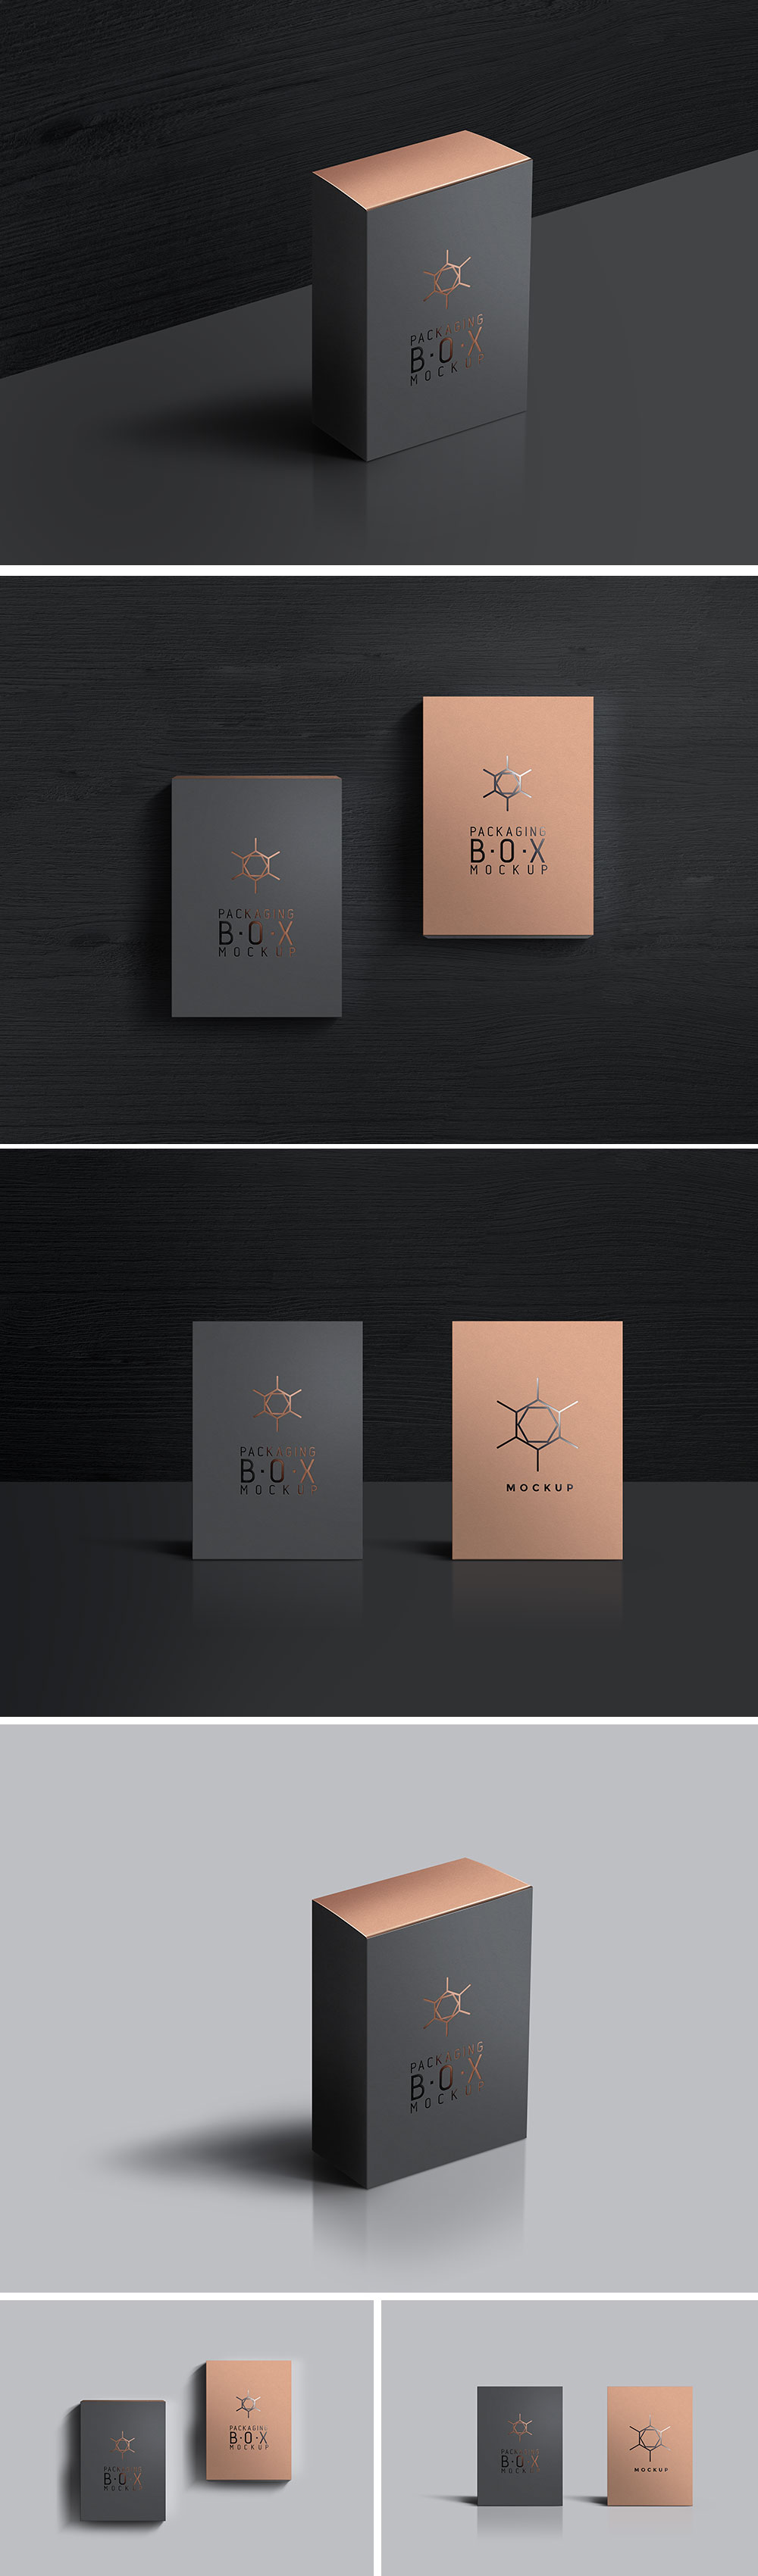 Packaging Box Mockups PSD